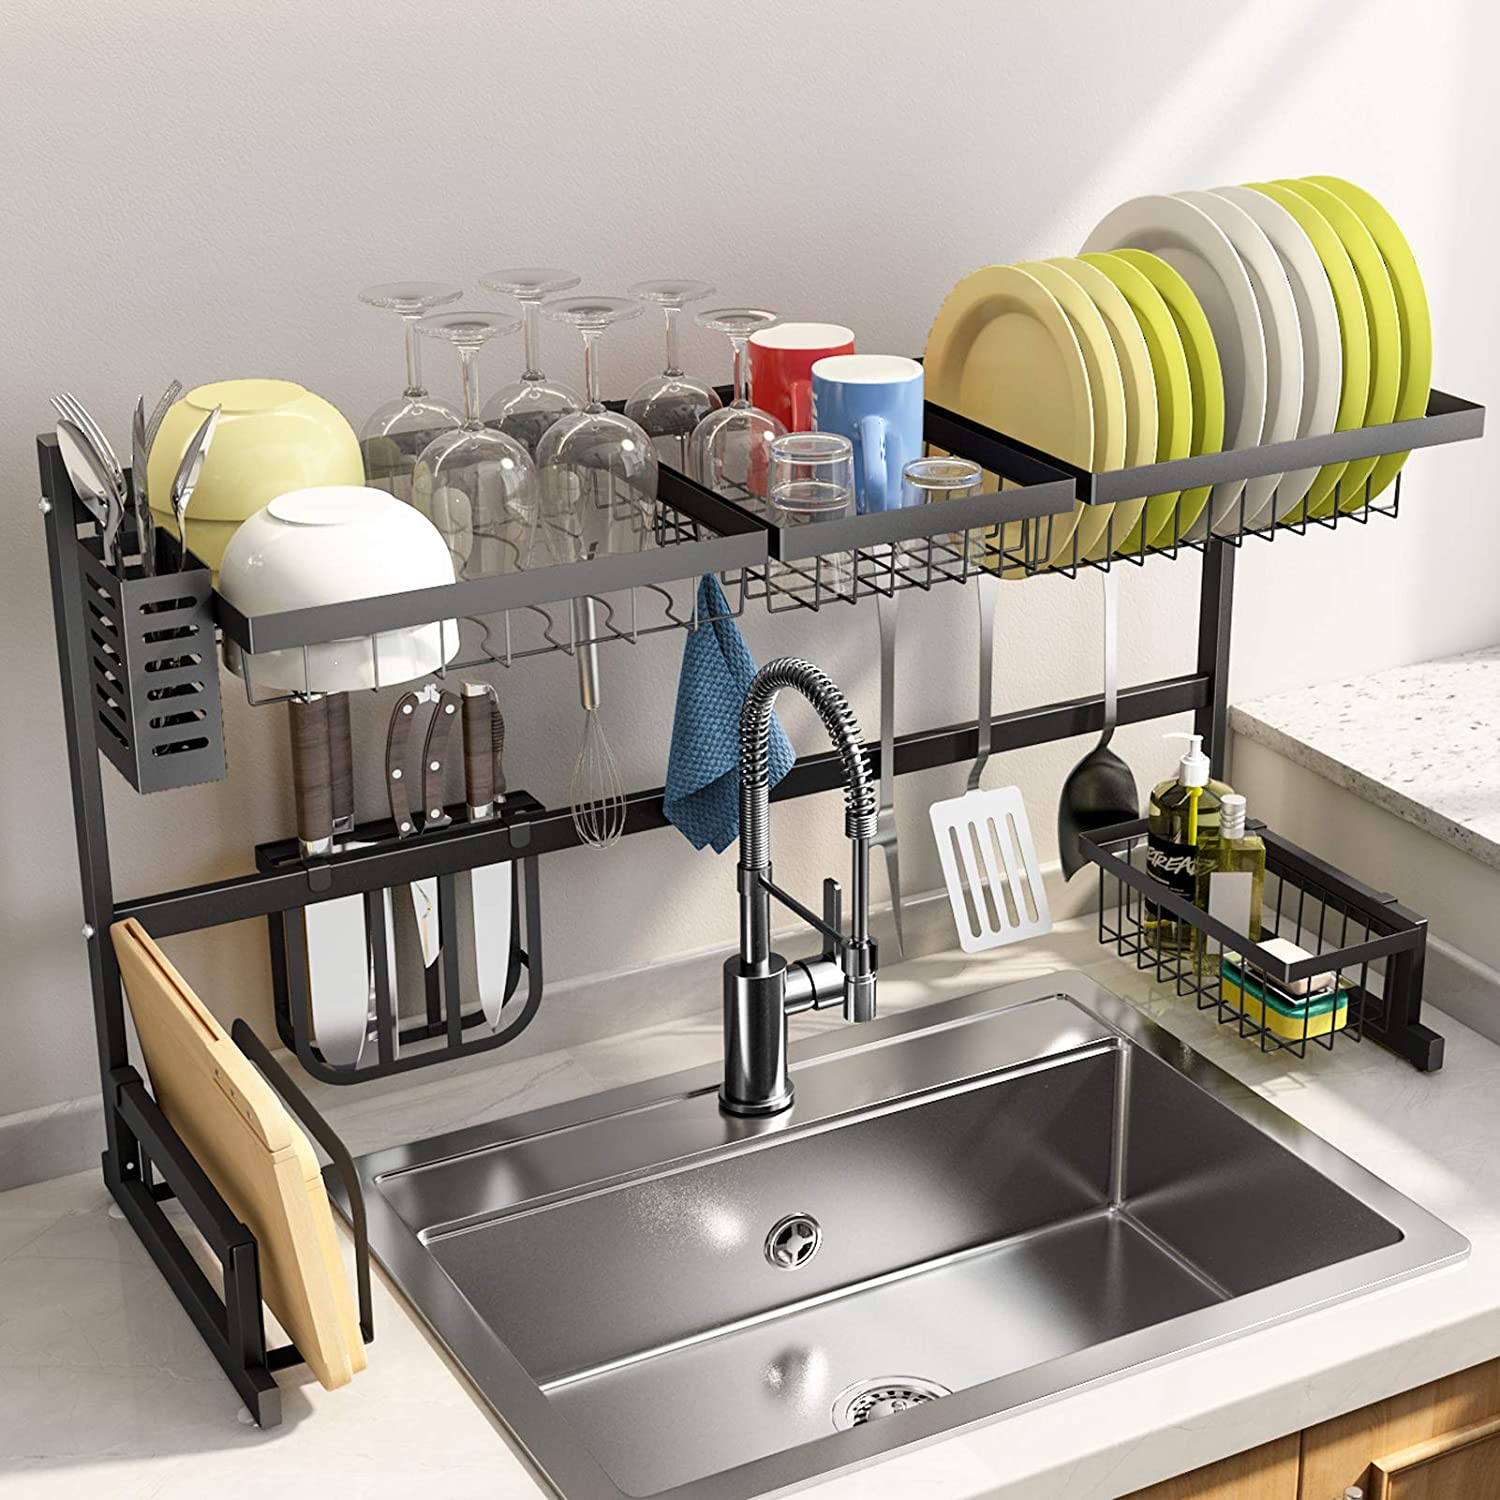 SNTD Over The Sink Dish Rack